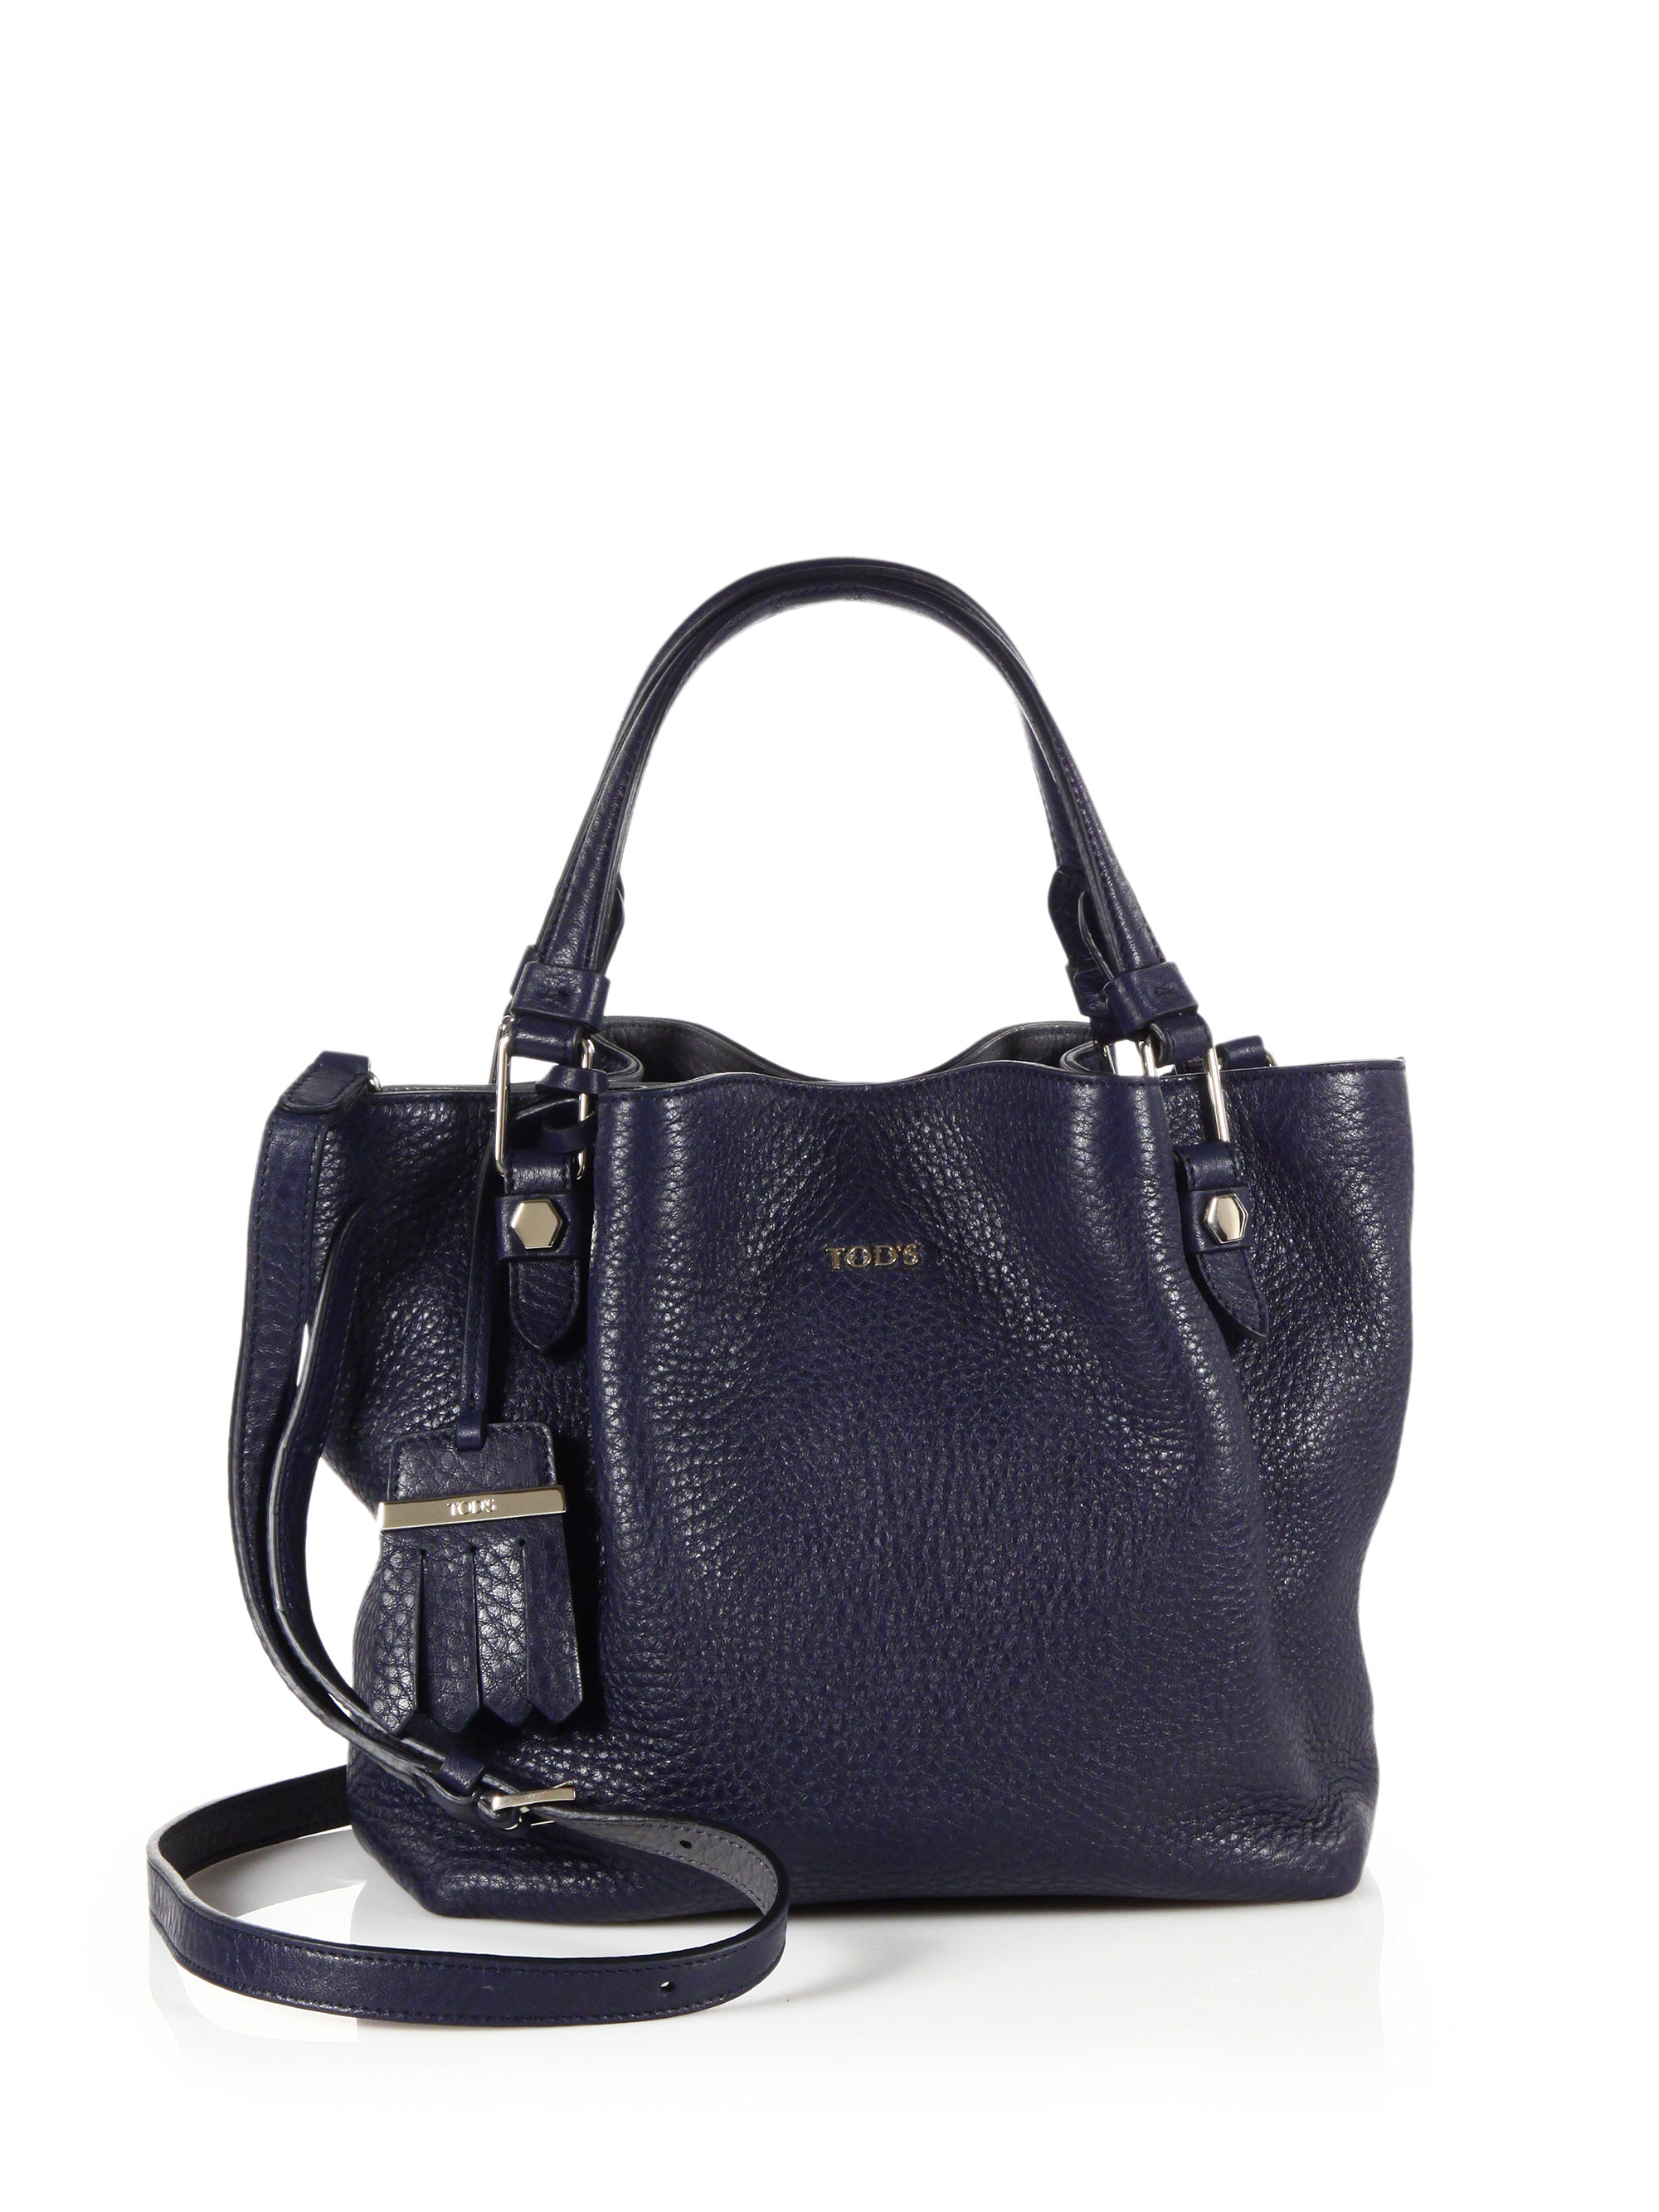 8f06e53457 Tod's Flower Mini Leather Tote in Blue - Lyst